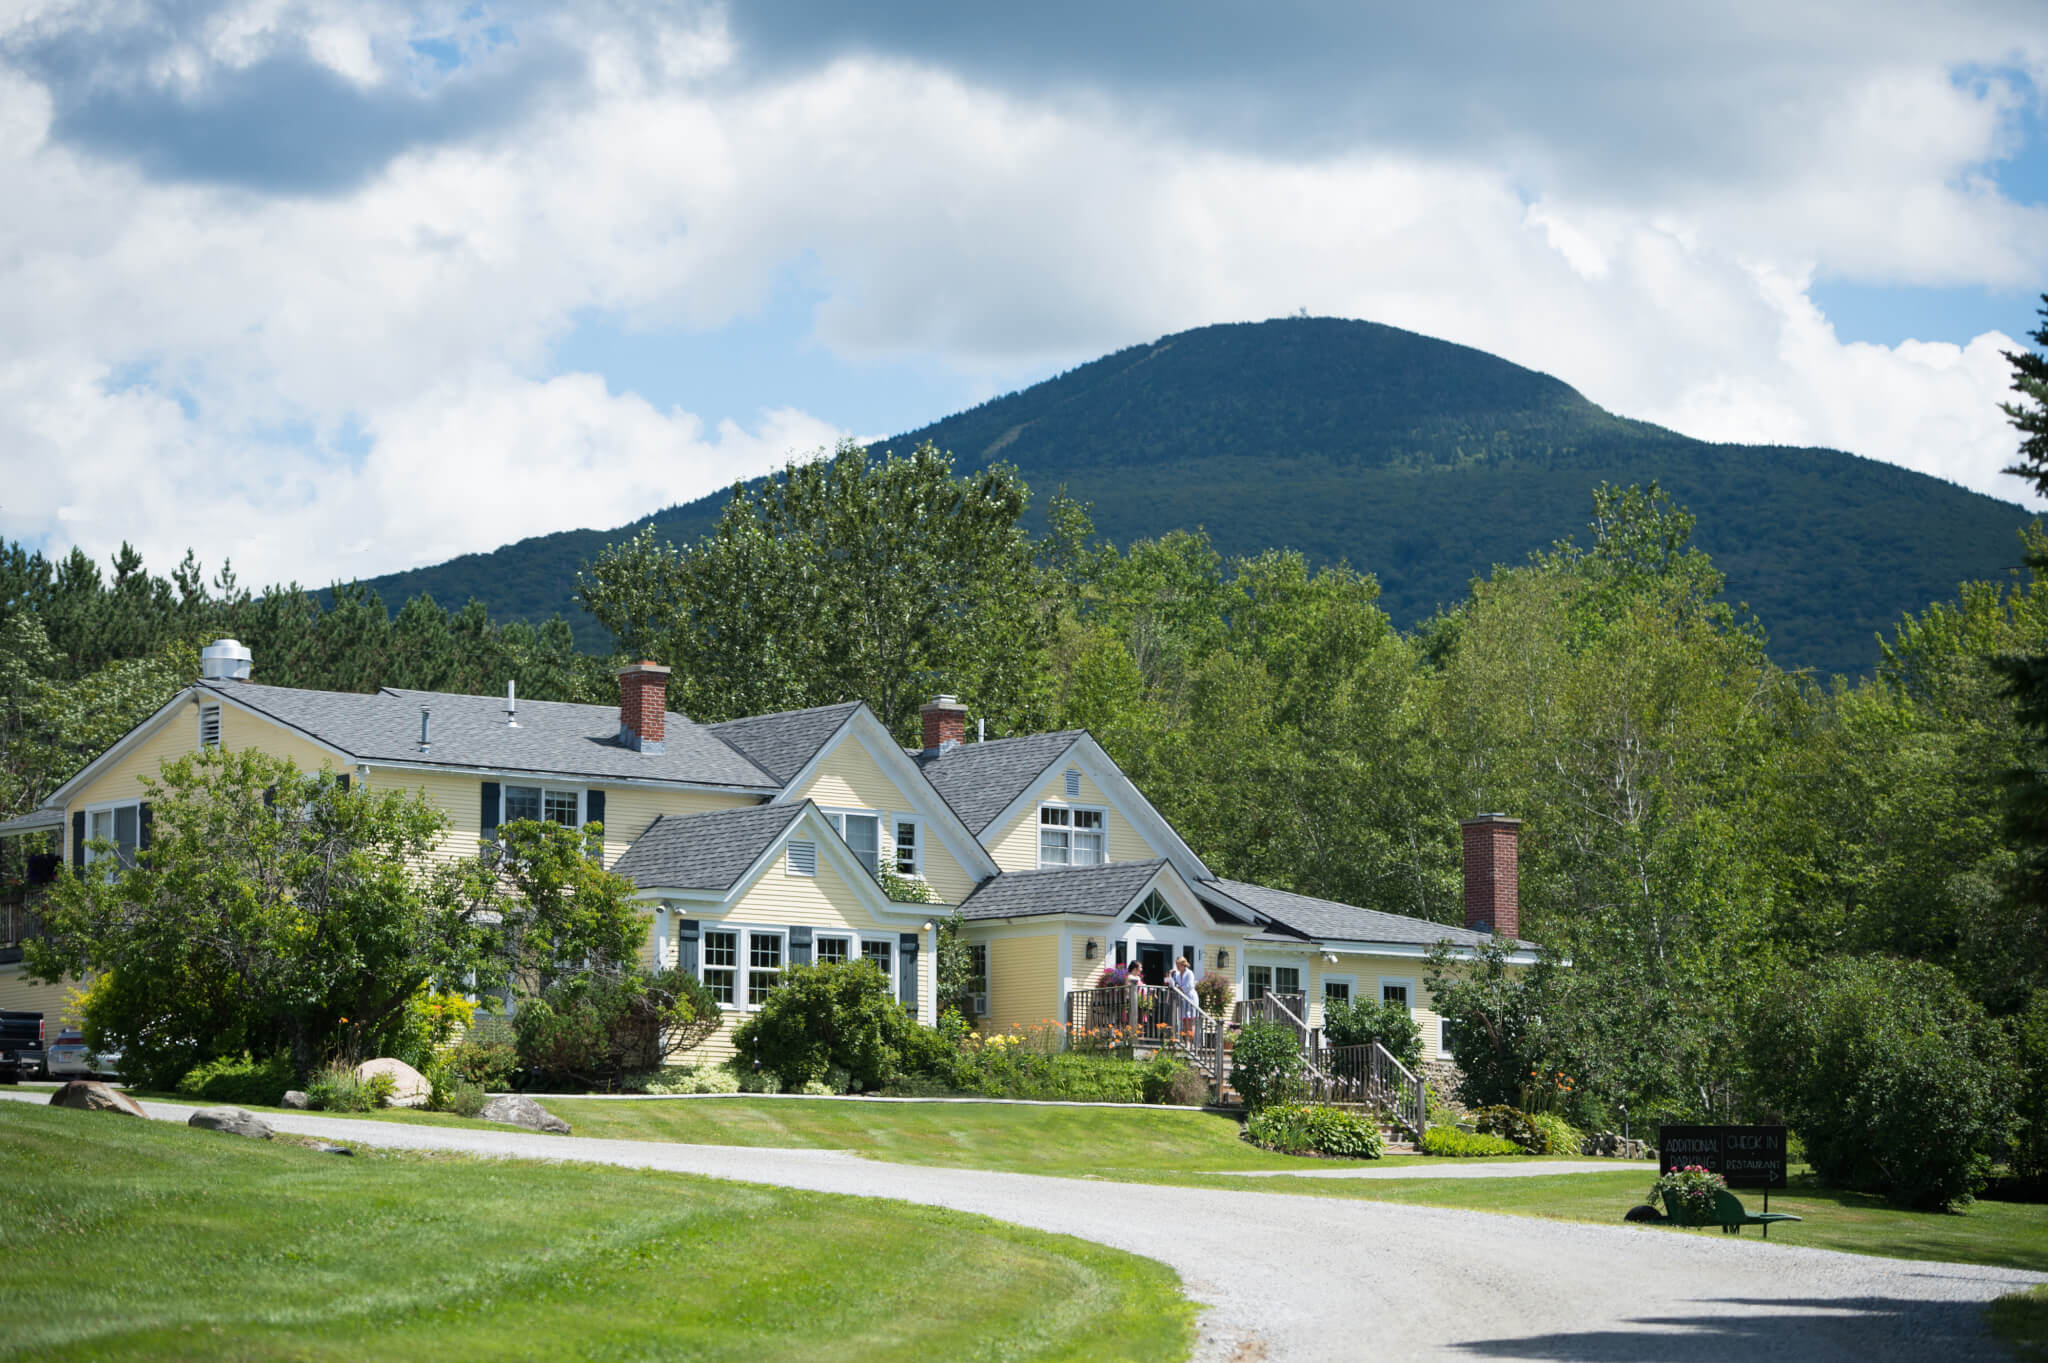 Red Clover Inn exterior with guests on the deck. Pick Mountain is behind the inn.